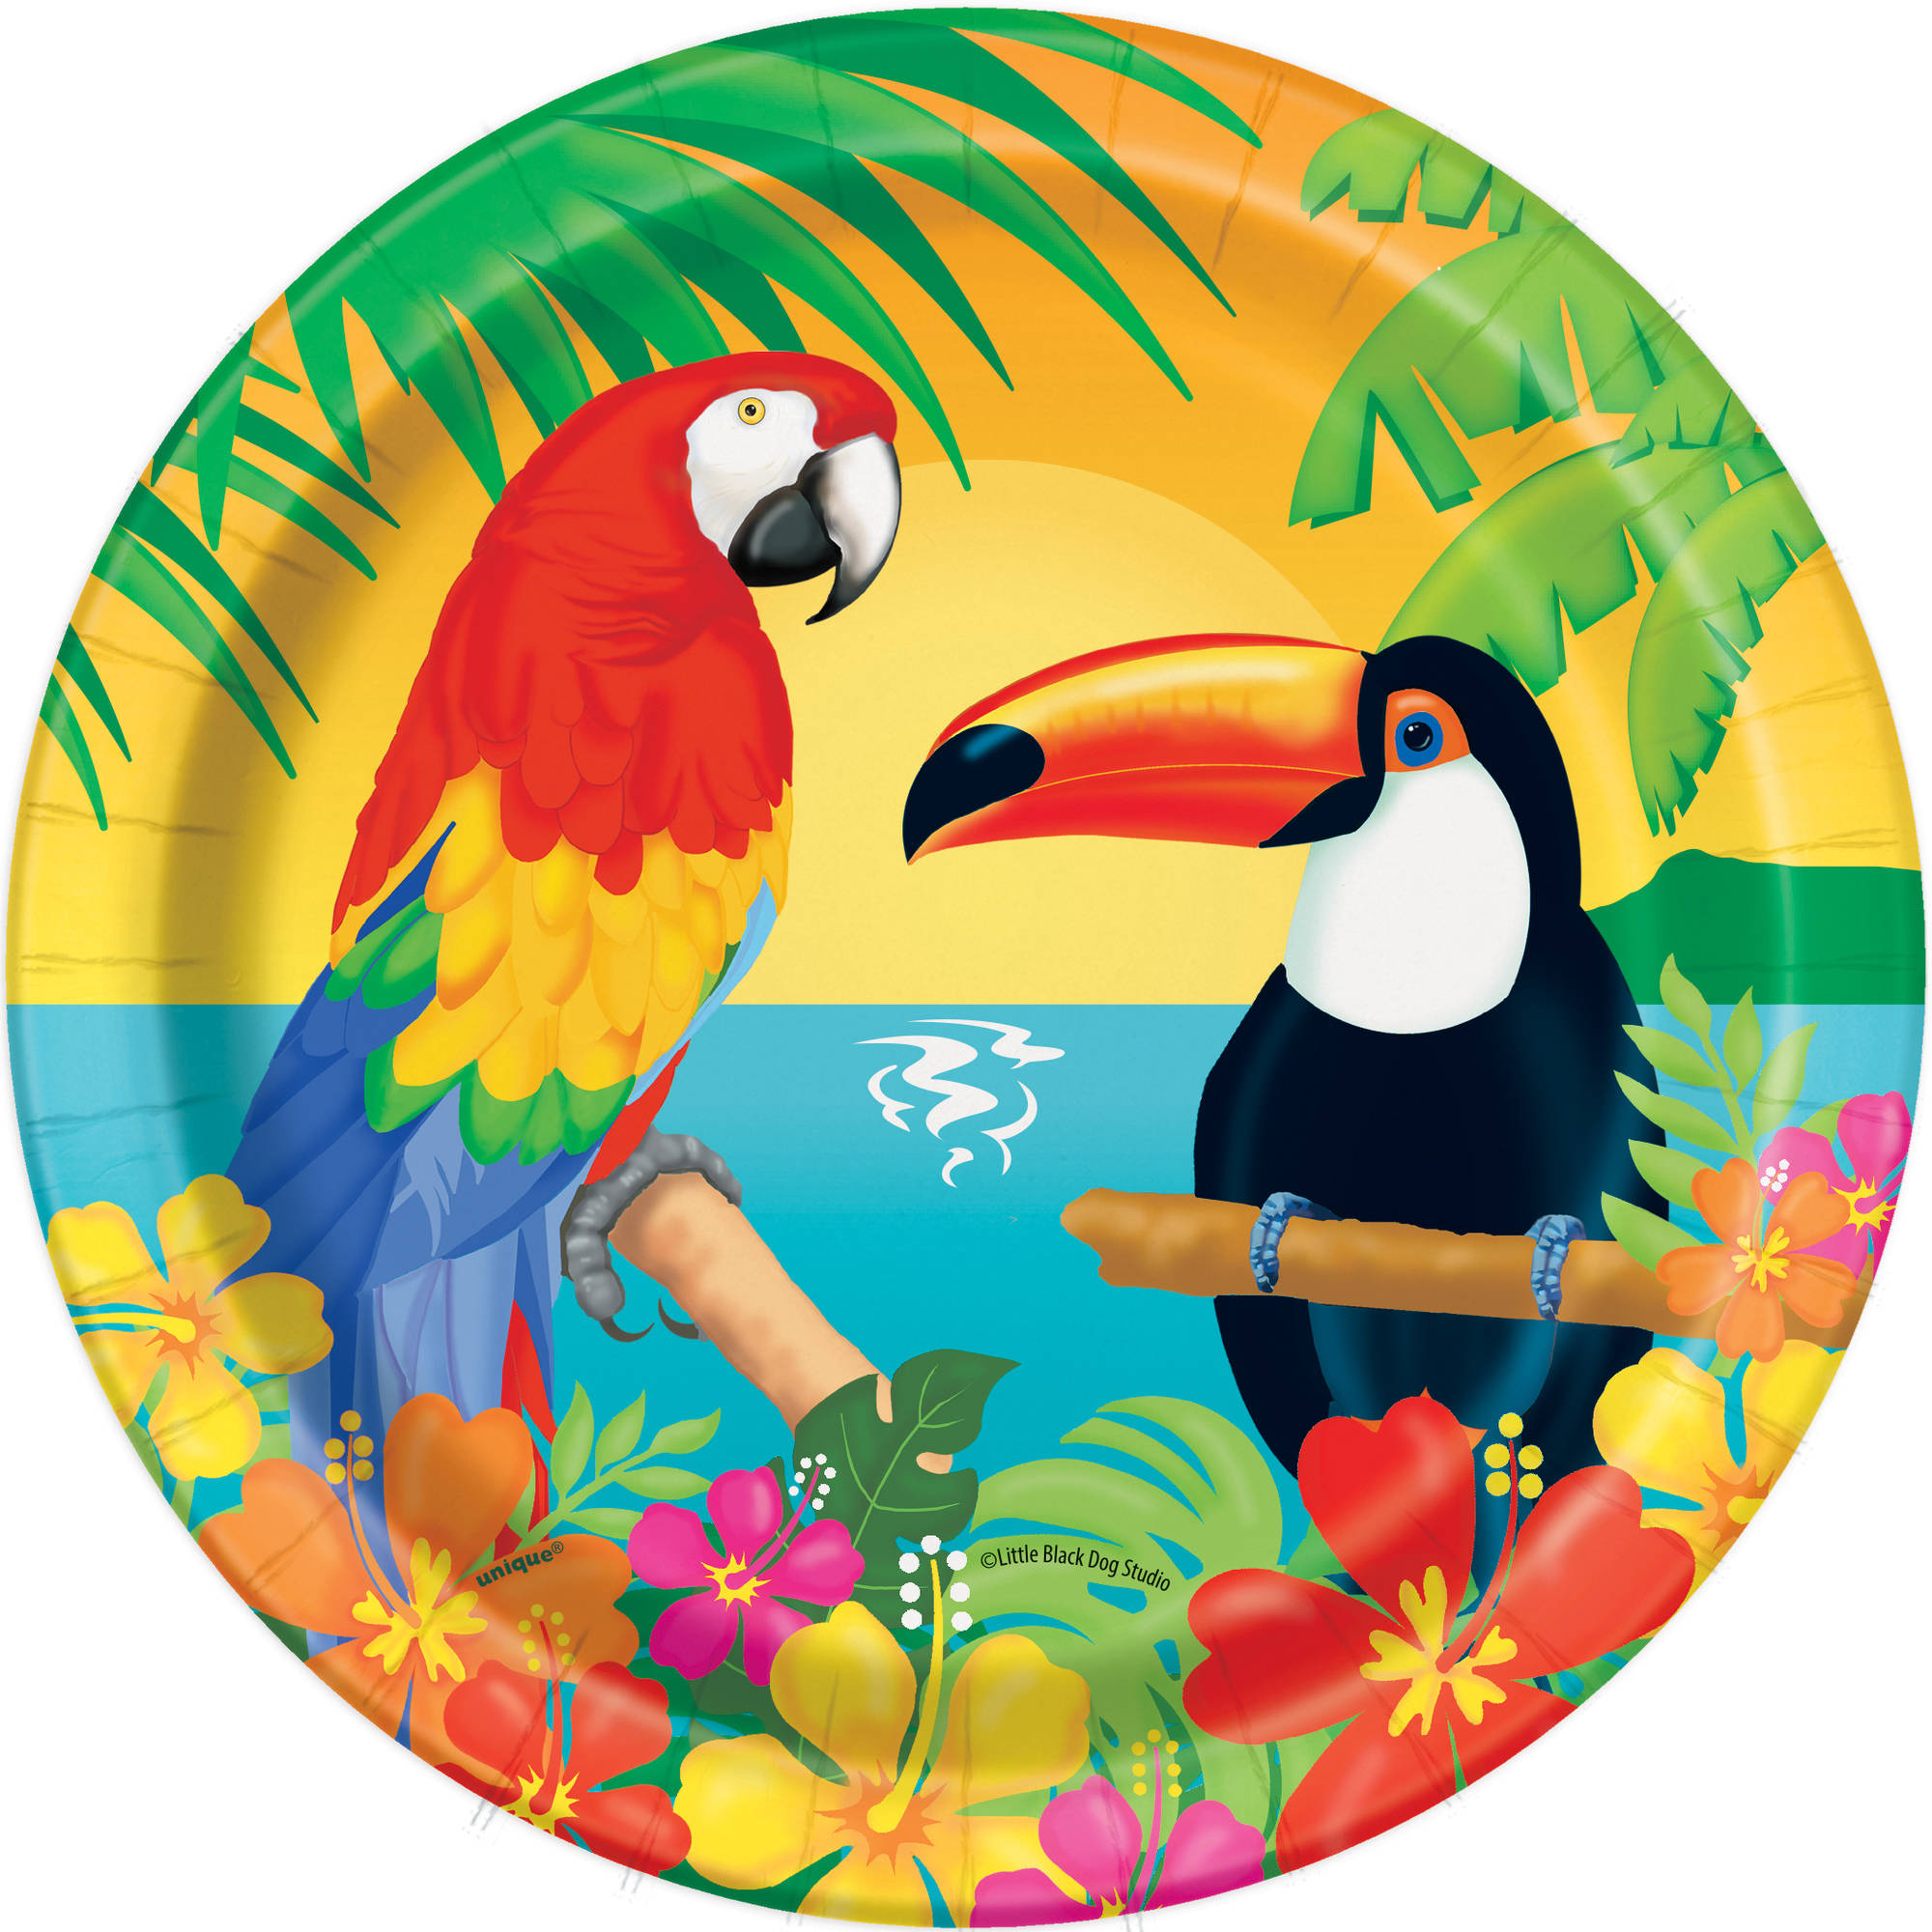 Exciting Paper Plate Parrot Craft Images Best Image  sc 1 st  Best Plate 2018 & Paper Plate Parrot - Best Plate 2018